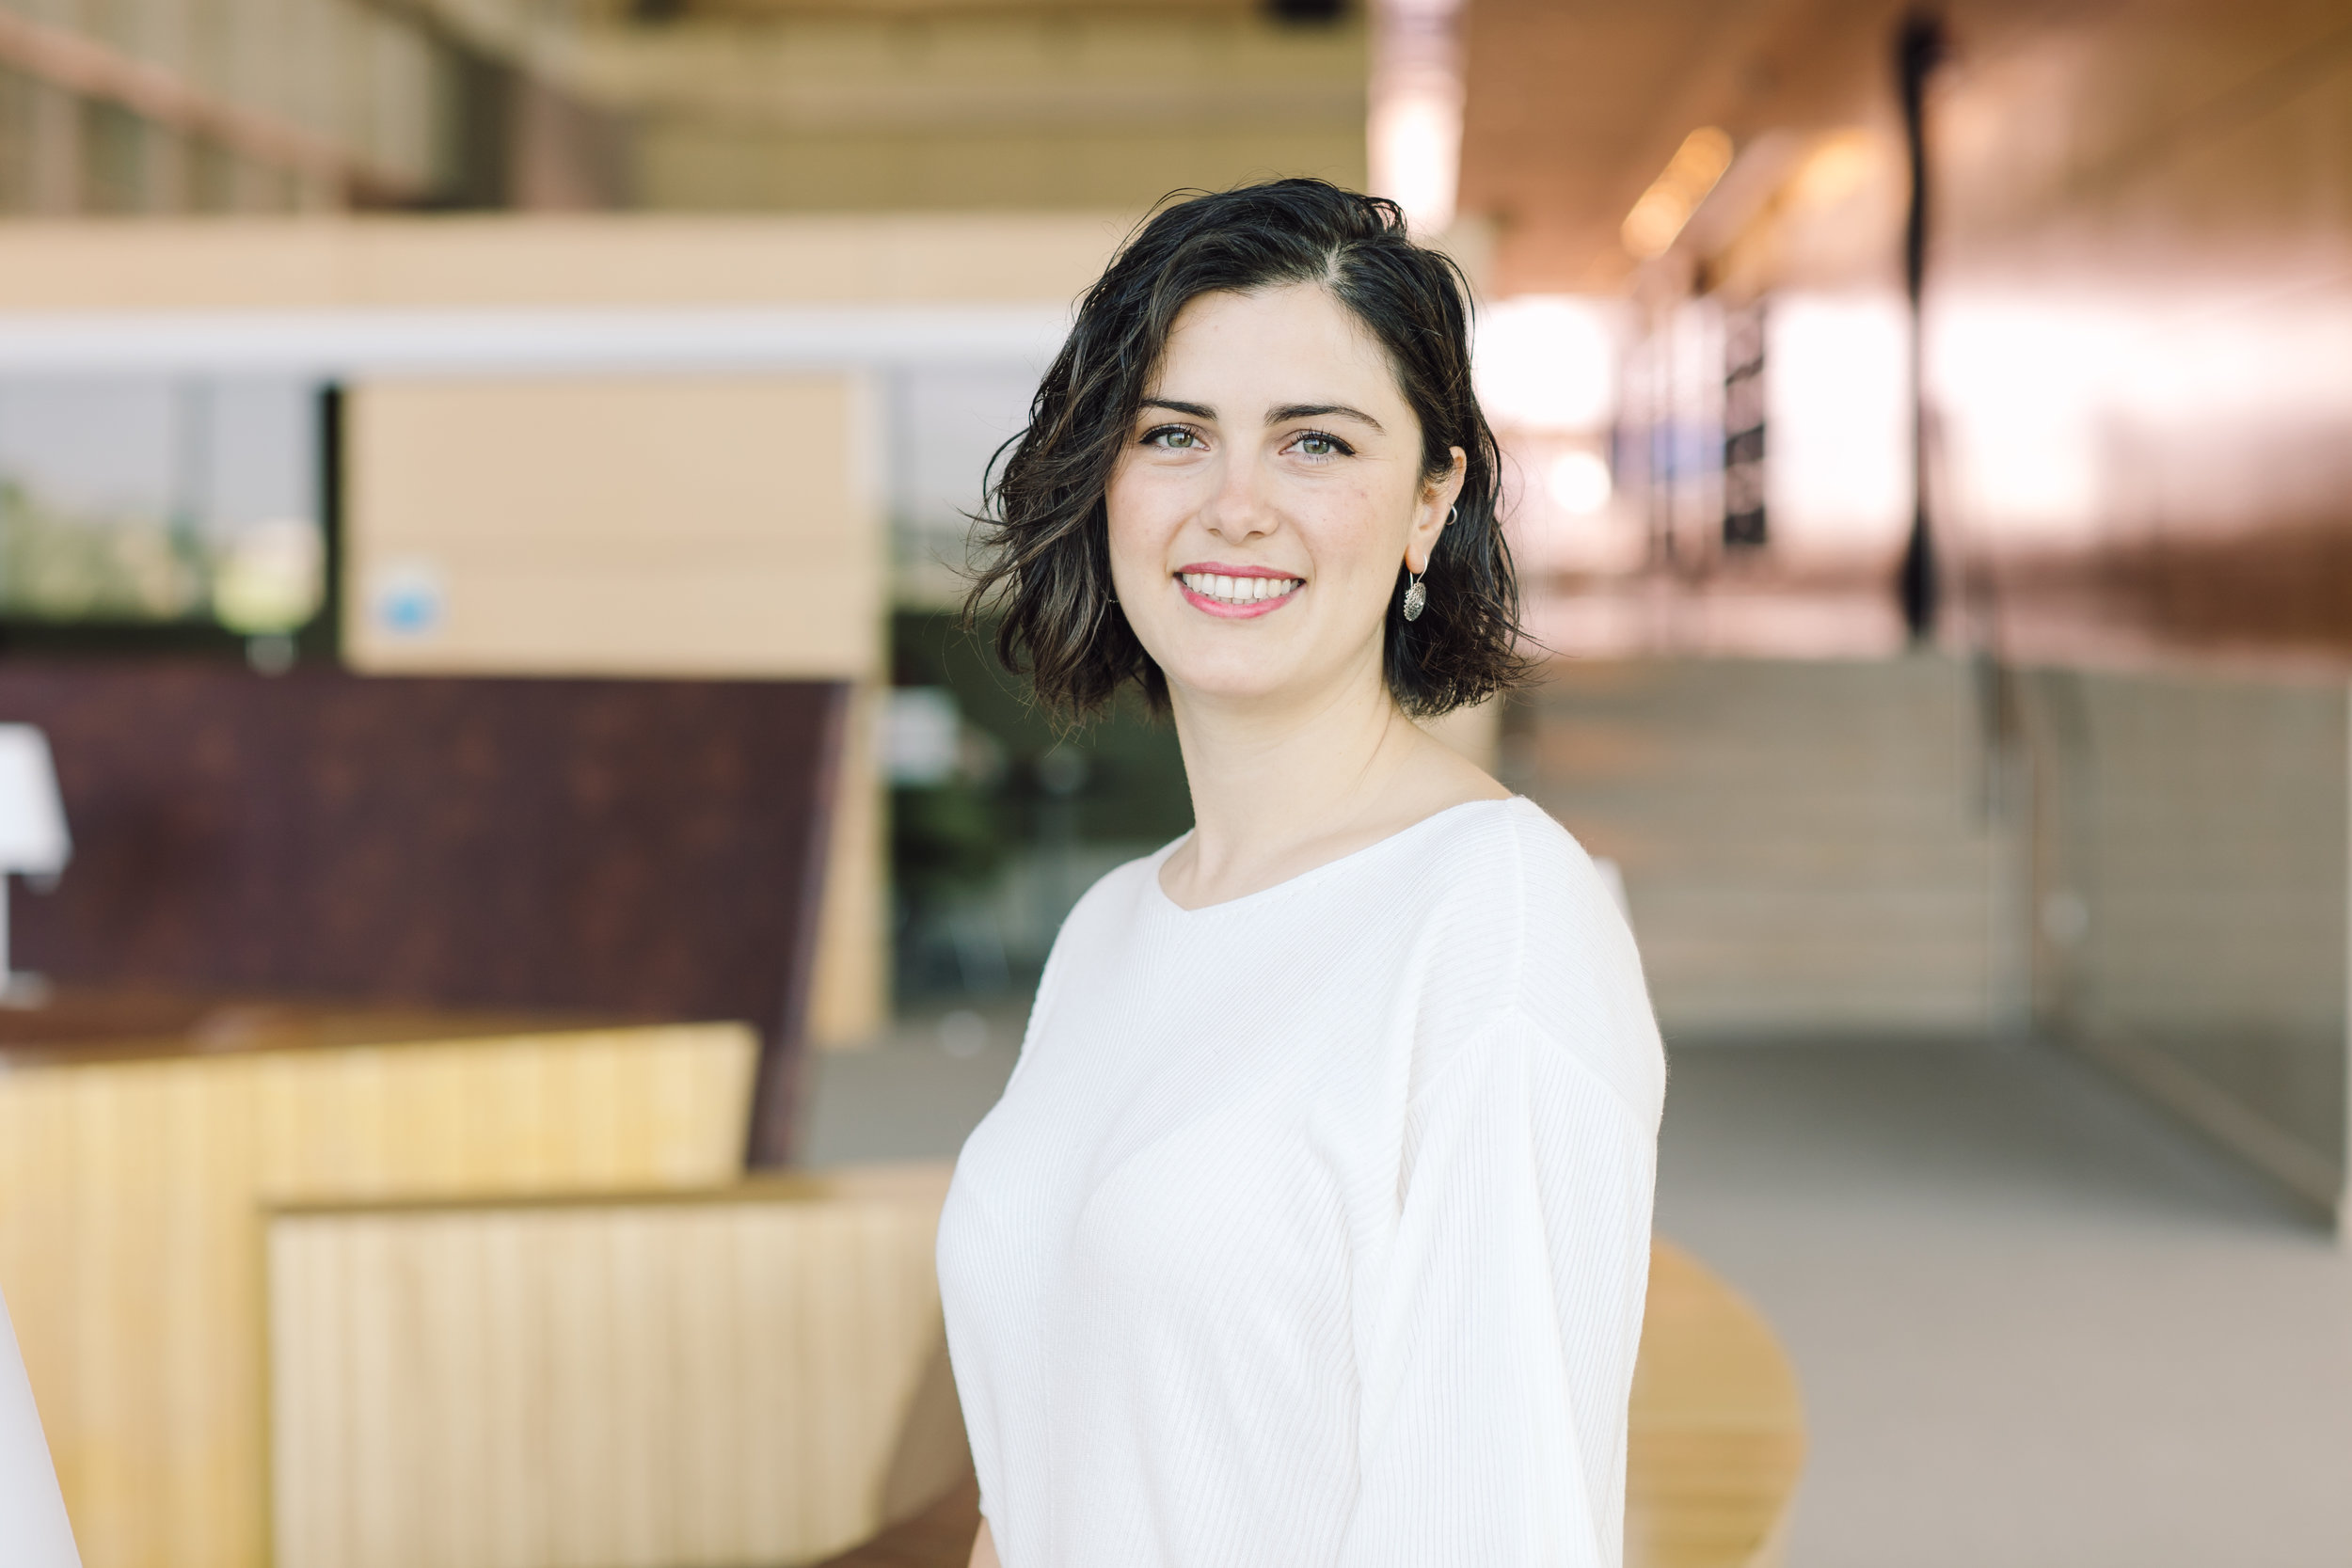 """Invited Guest Speaker at ICoPP 2019 - 22-25/05/19Professor Derya Baran attends the """"International Conference on Photocatalysis and Photoenergy (ICoPP 2019)"""" in Incheon, Korea as an invited speaker. She will discuss photocurrent conversion in nonfullerene solar cells."""